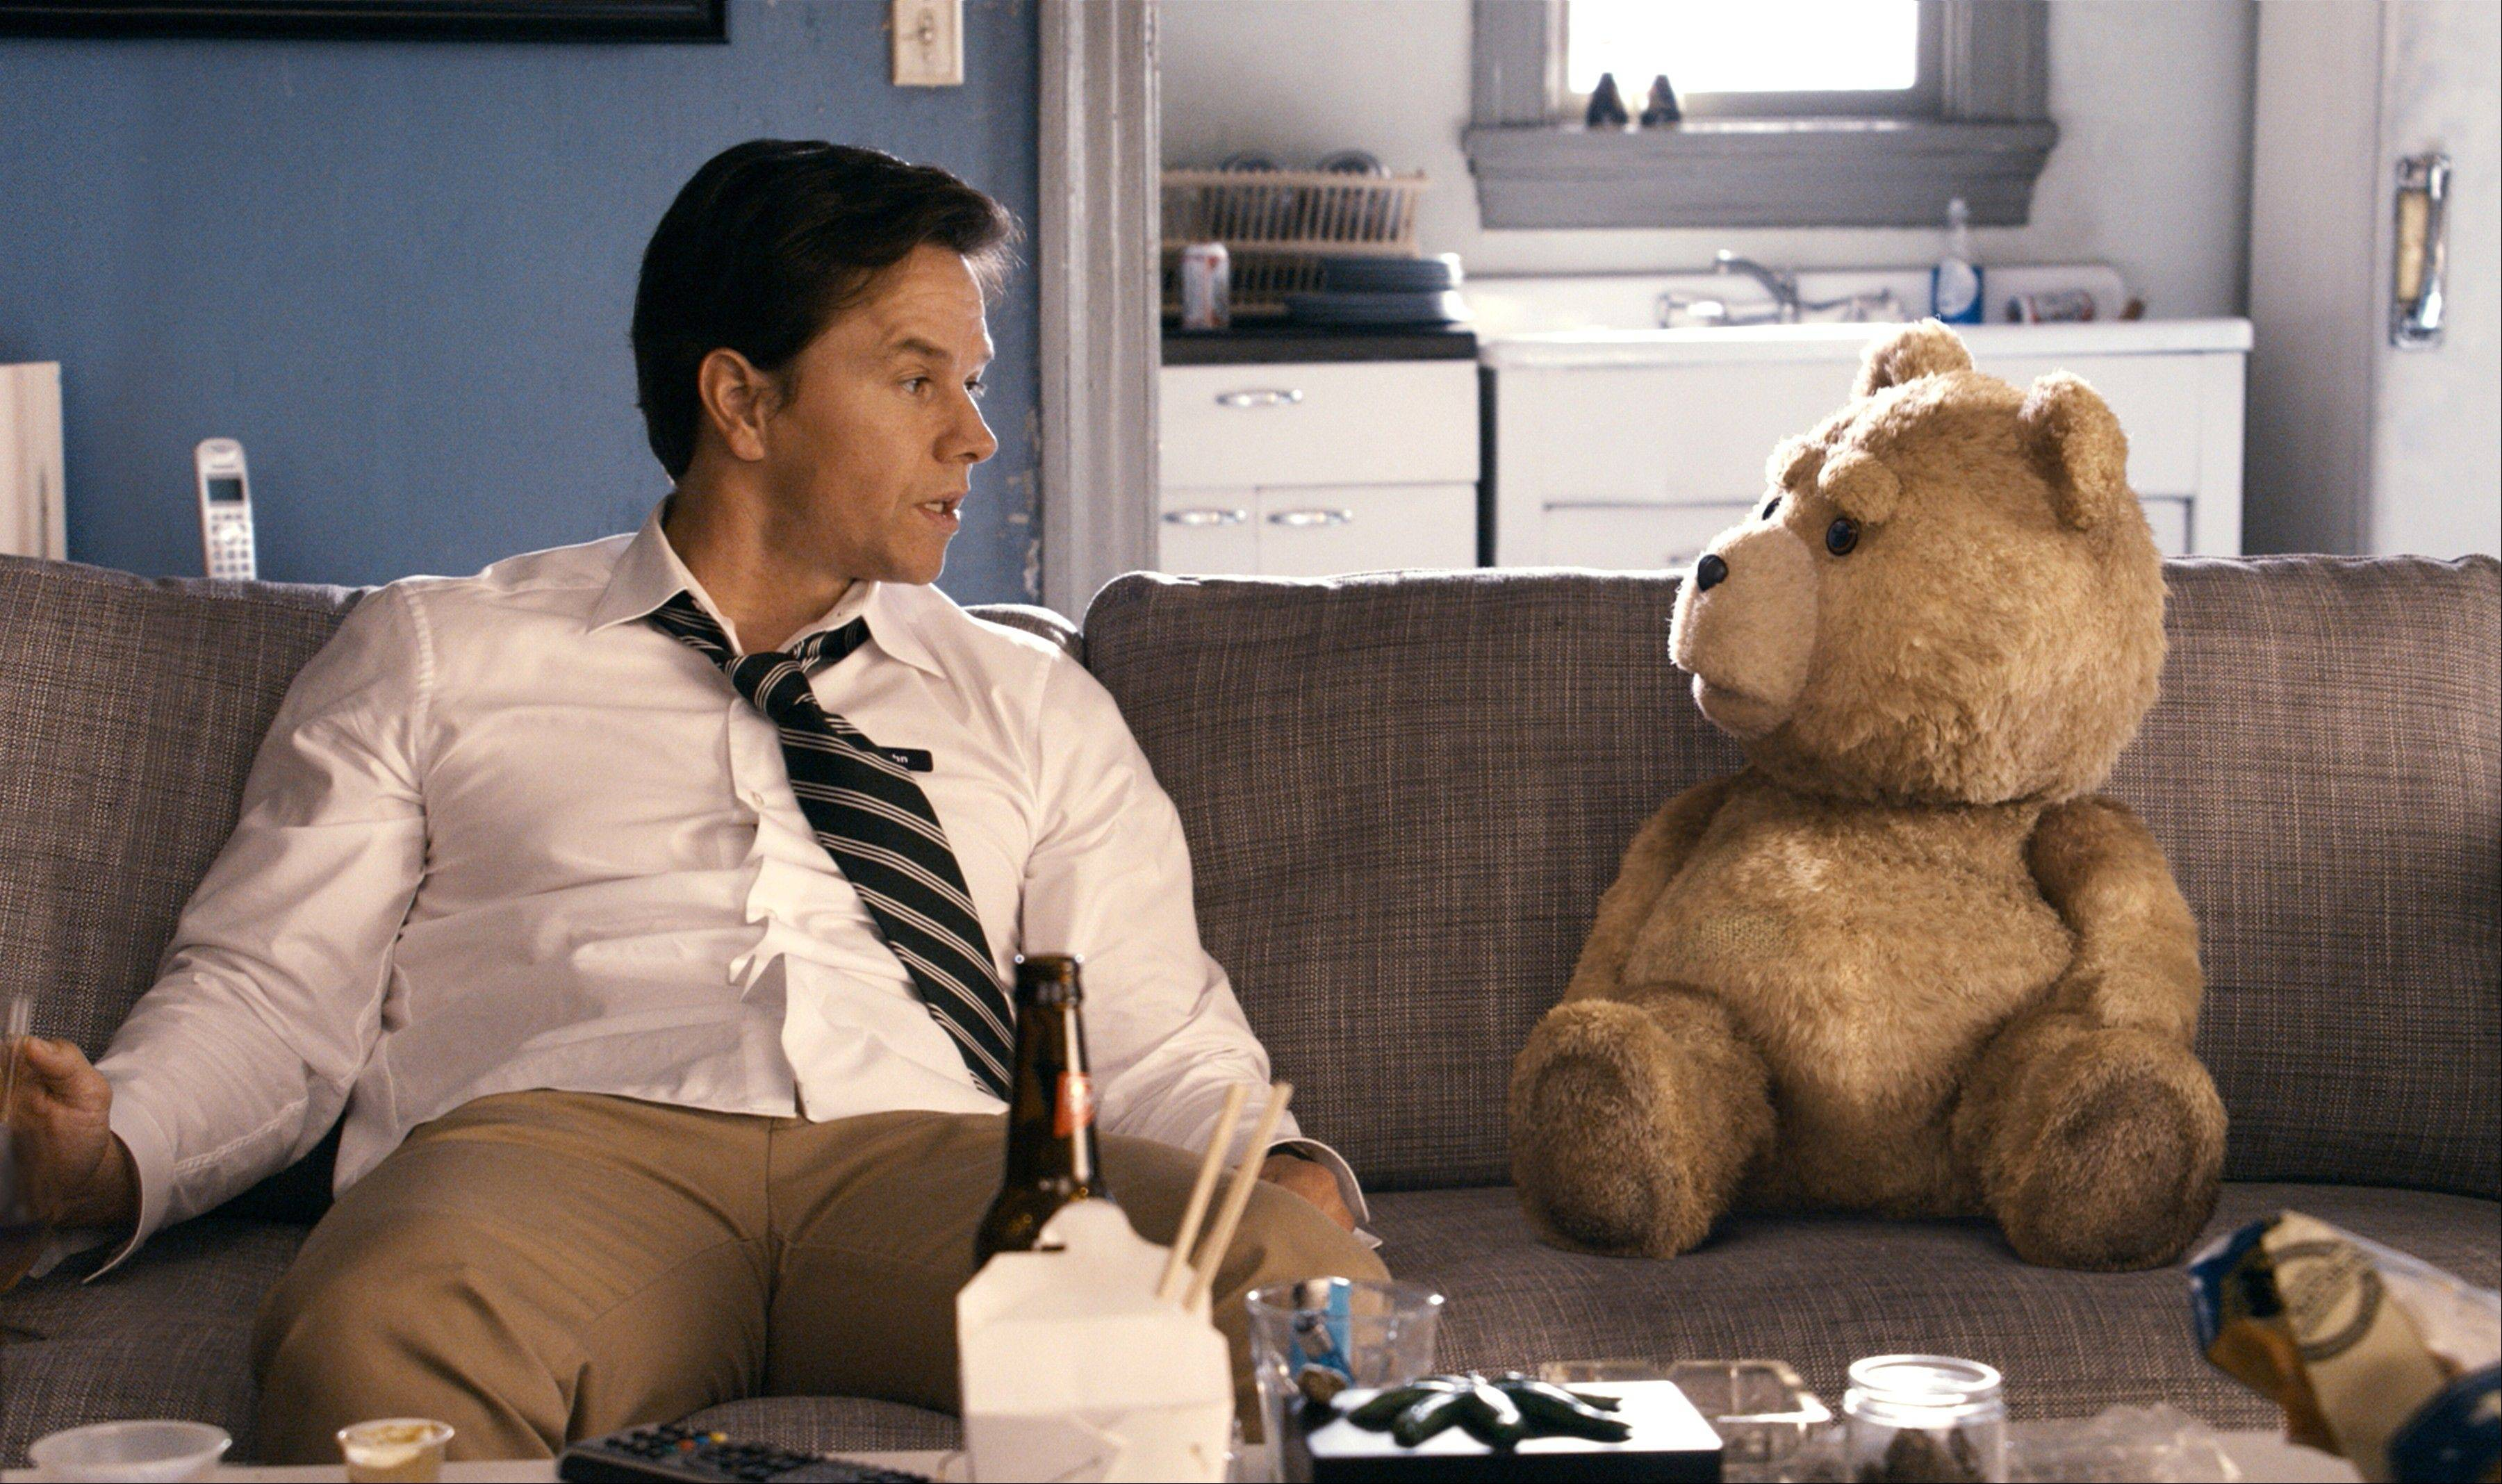 """Ted"" is up for a number of MTV Movie Awards. The foul-mouthed stuffed bear, however, faces tough competition from Channing Tatum in the new shirtless category."